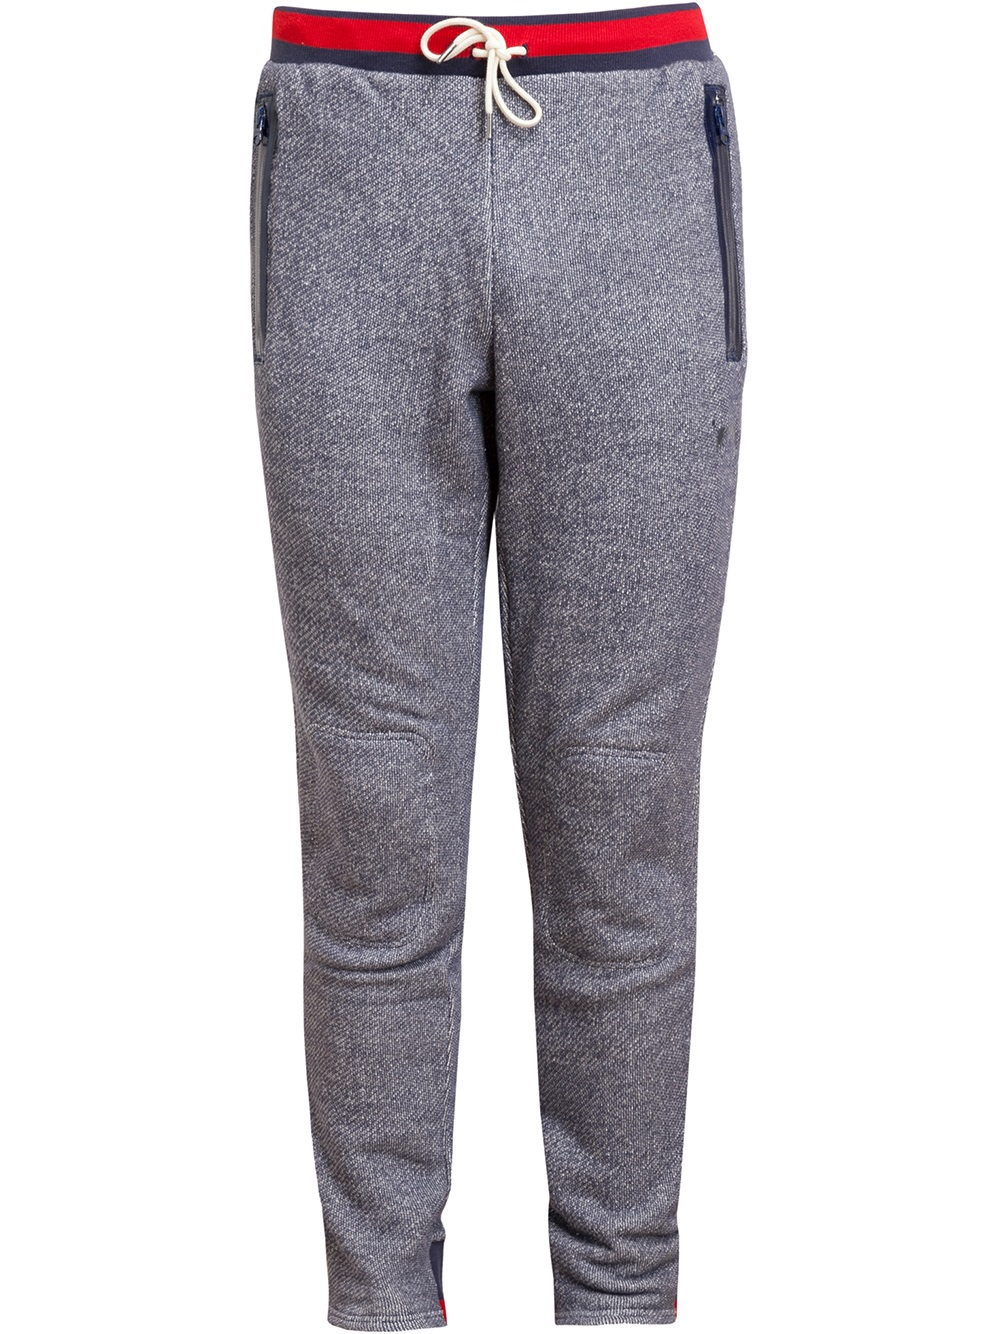 Cotton Sweatpants. Get comfortable. Cotton sweatpants are a must-have staple in your cozy aresenal of loungewear. Choose from men's and women's styles to find a comfy pair for your everyday rotation. Drawstring Styles The perfect fit. Enjoy a snug or loose feel with the versatility of drawstring sweatpants.